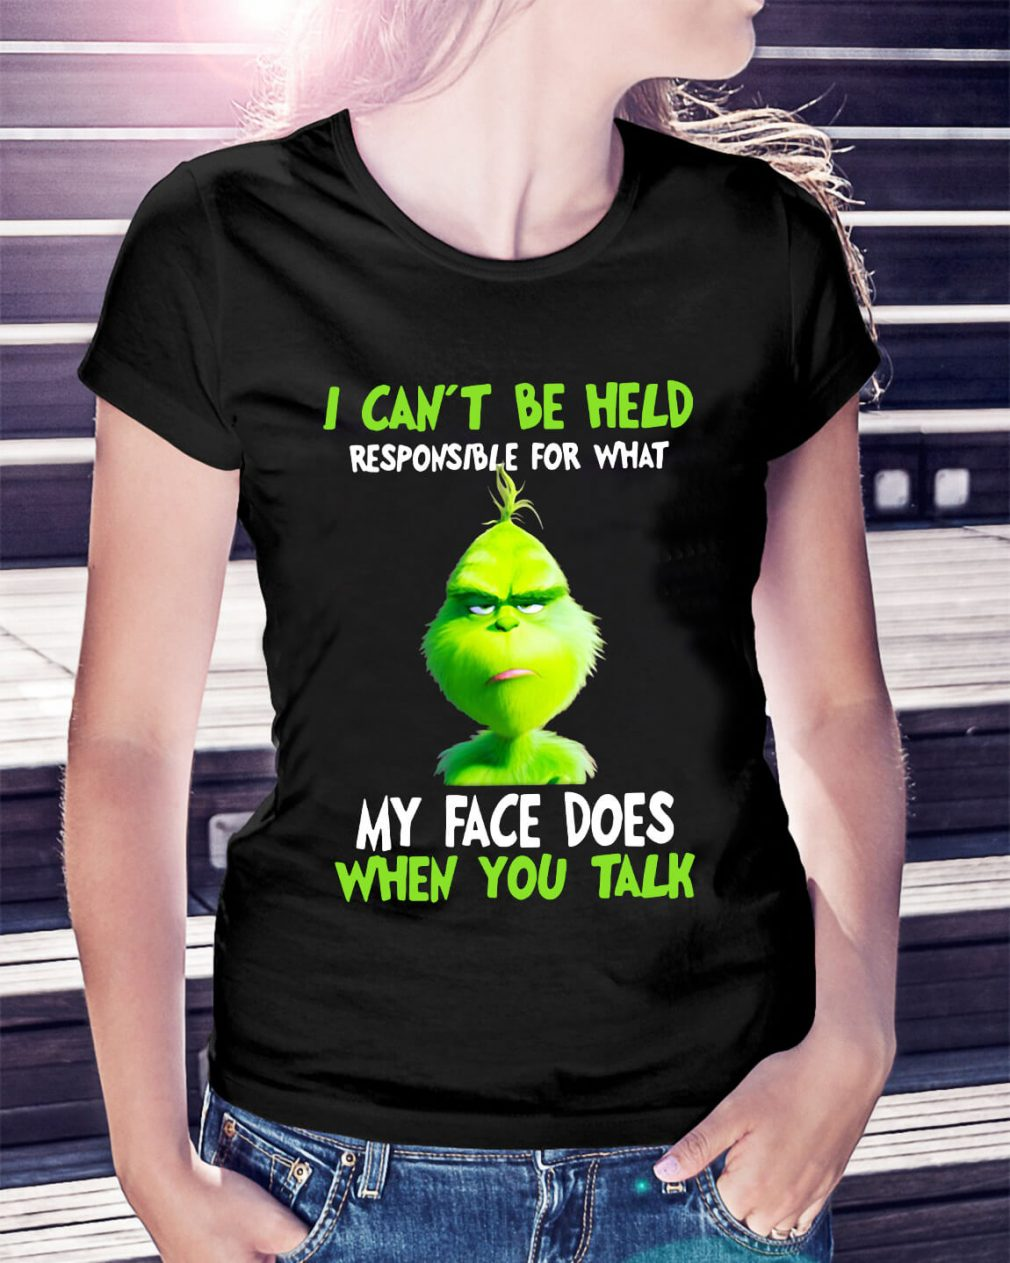 Grinch I can't be held responsible for what Christmas Ladies Tee